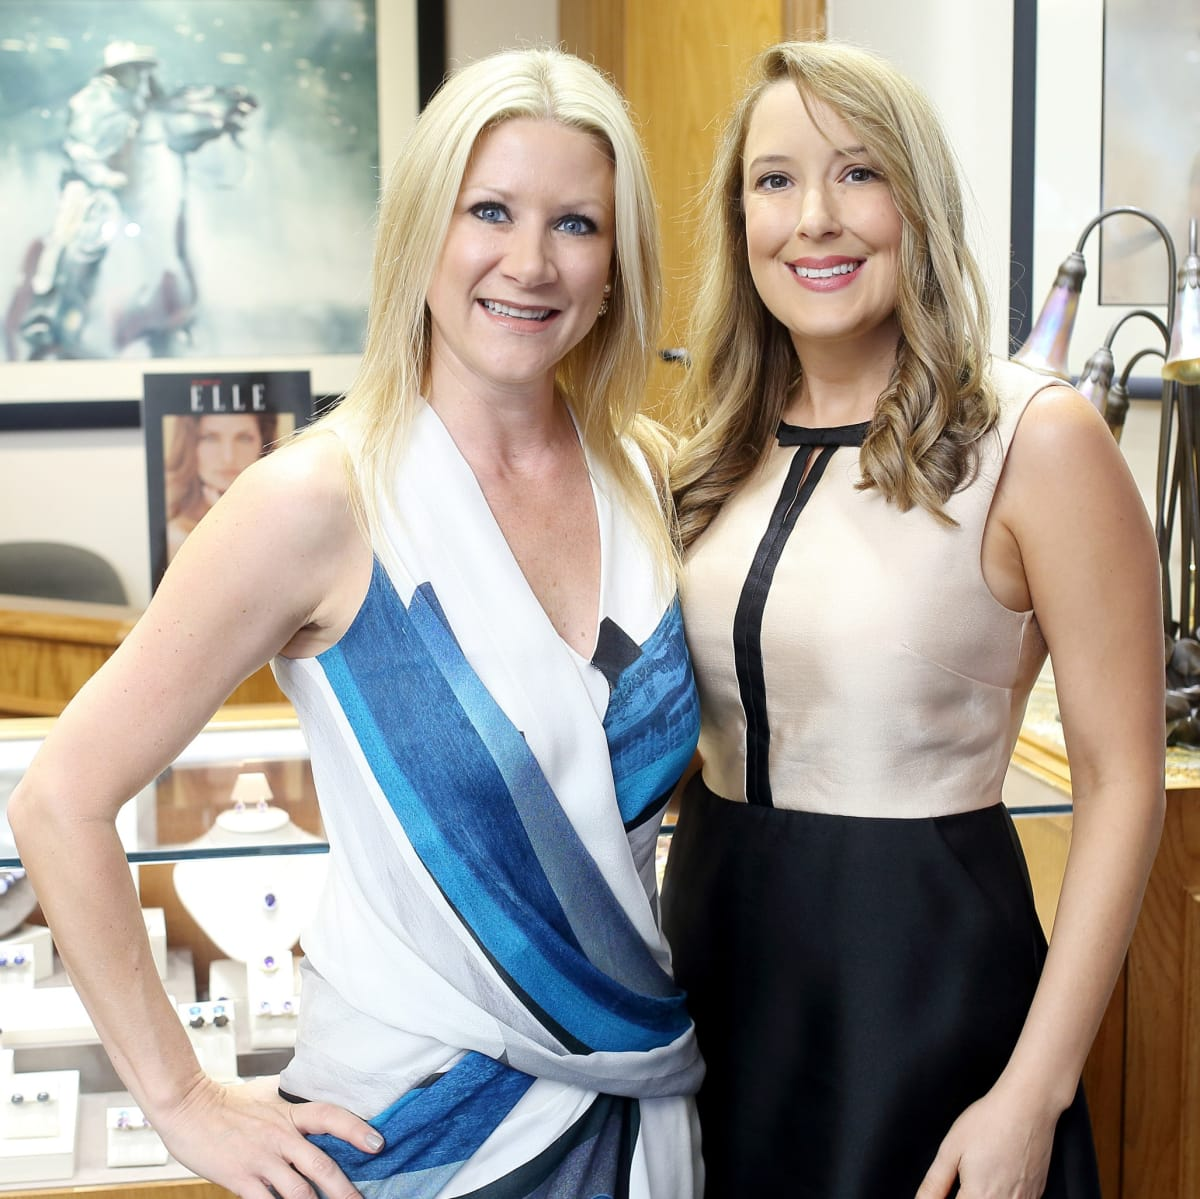 Houston, Una Notte kickoff party, October 2015, Stacey Soriero, Andrea Sivells